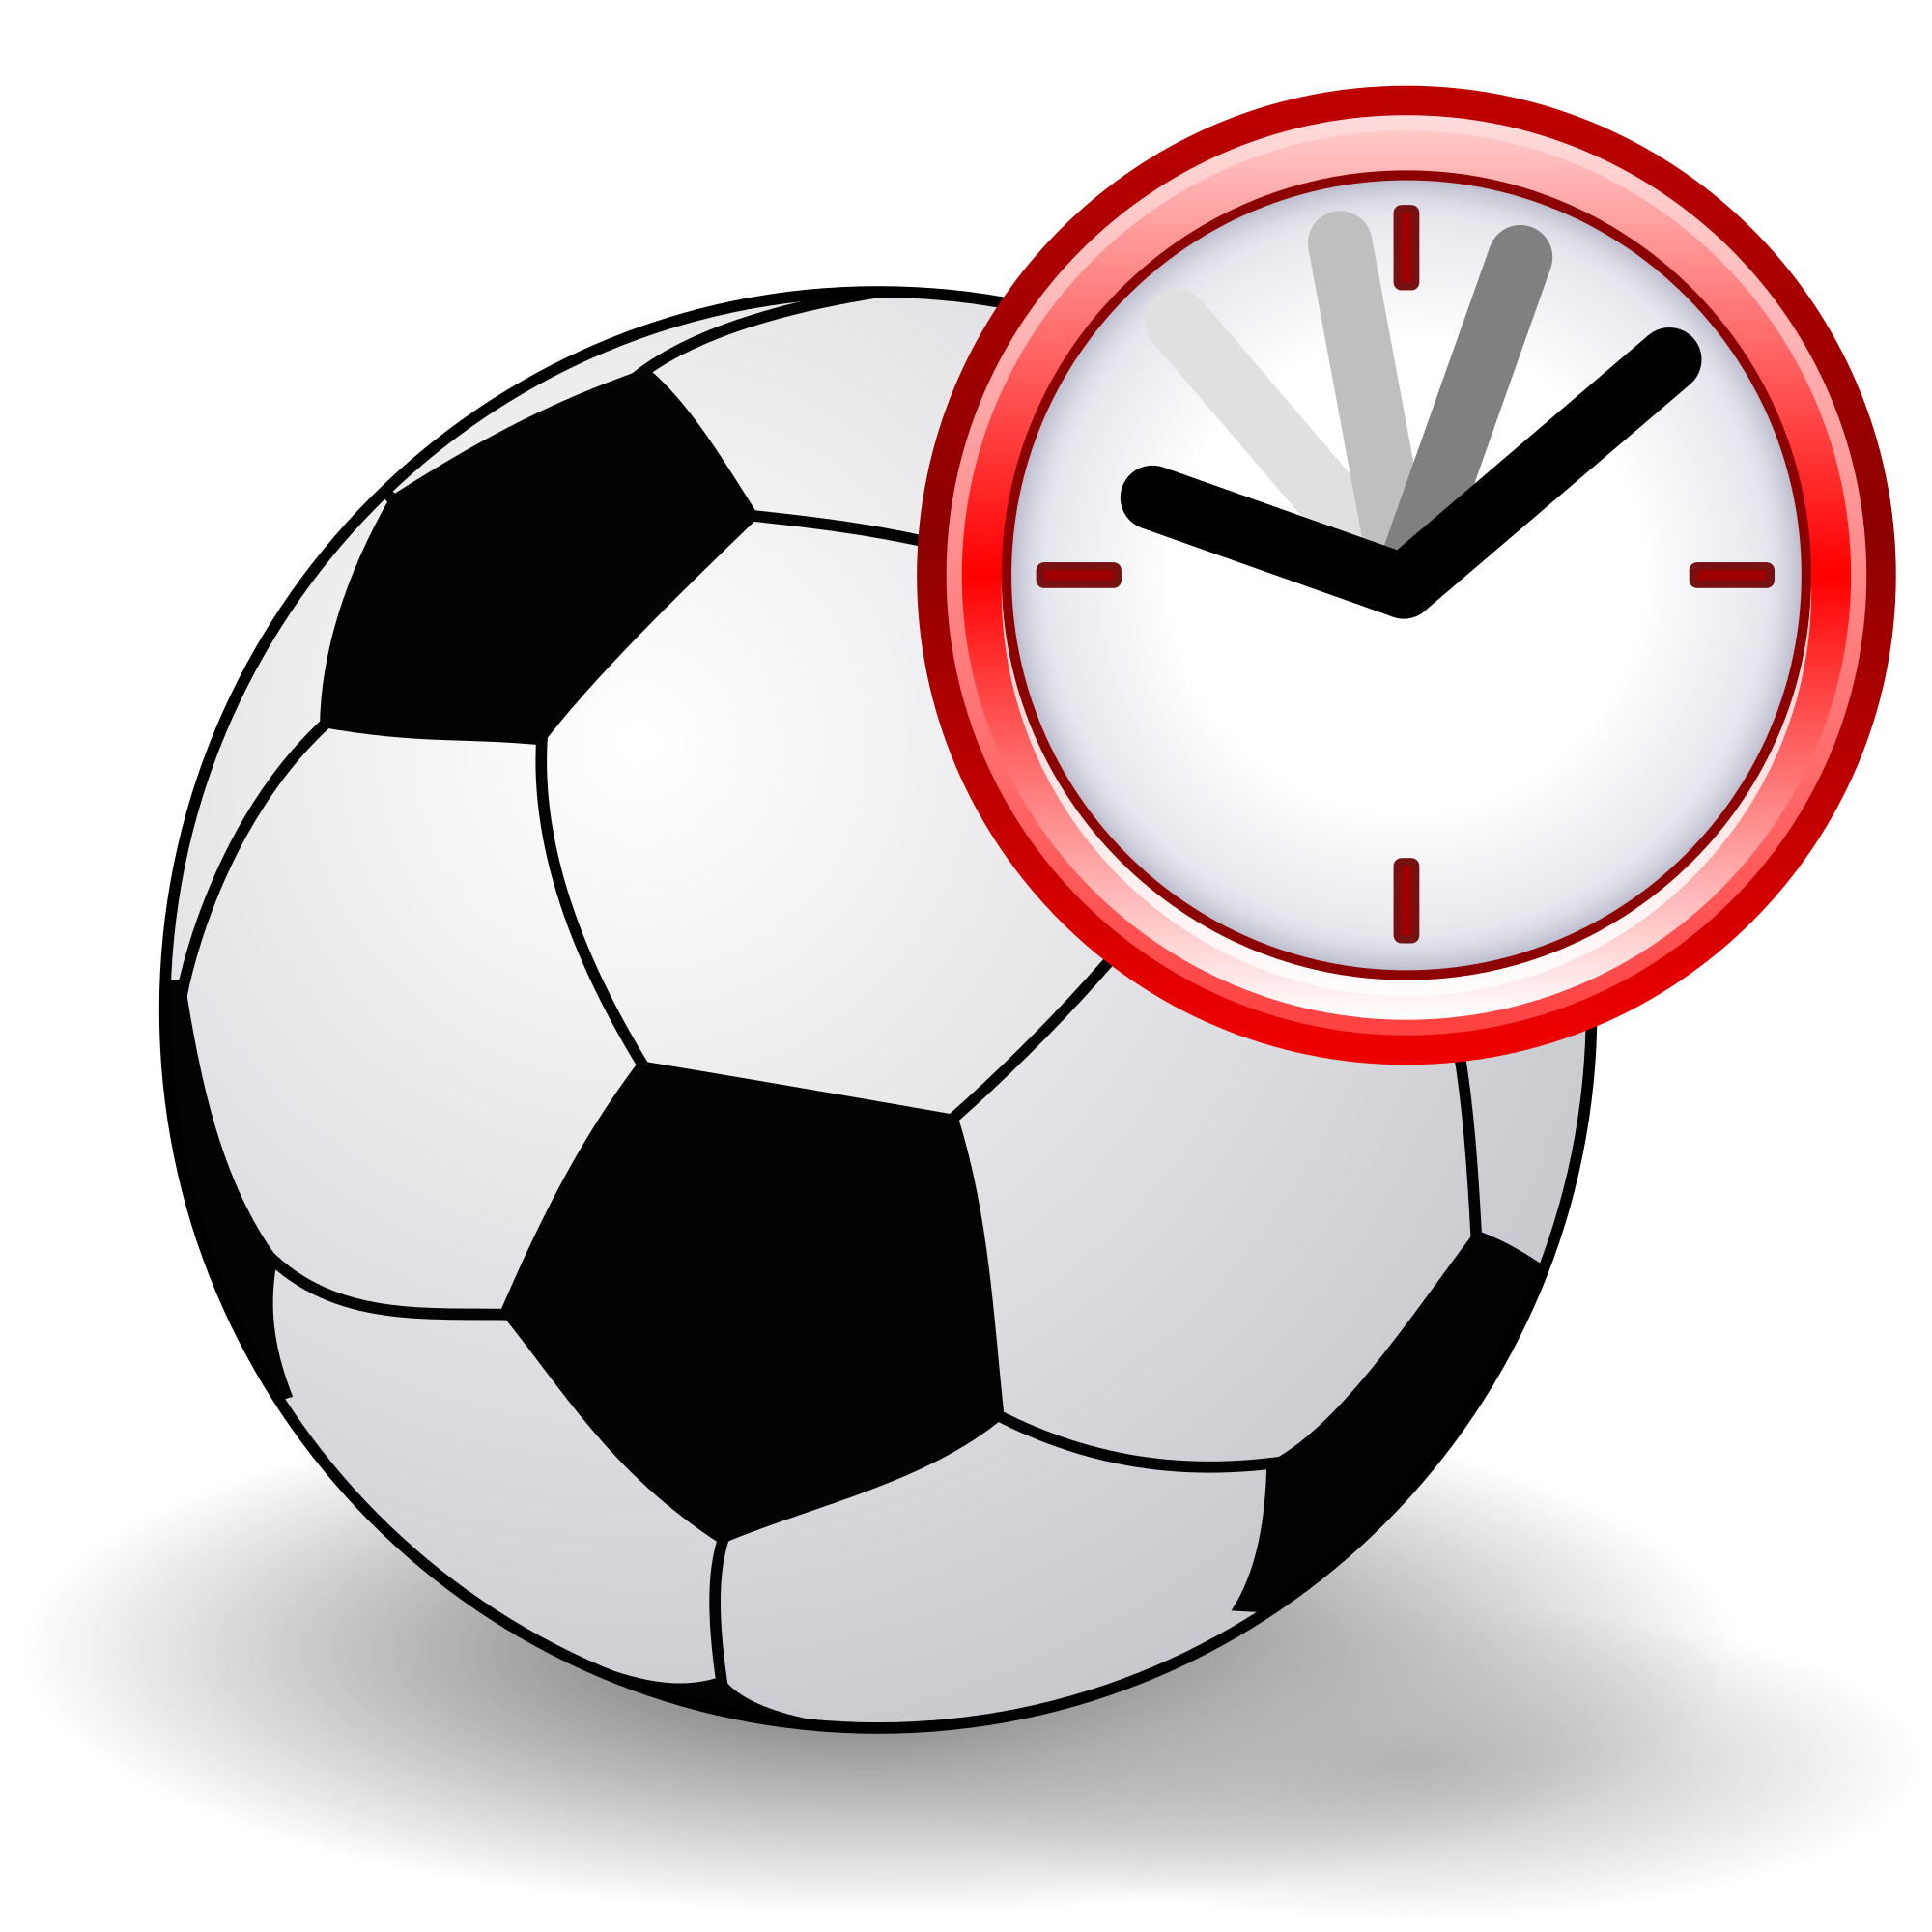 2000x2000 Filesoccerball Current Event.svg